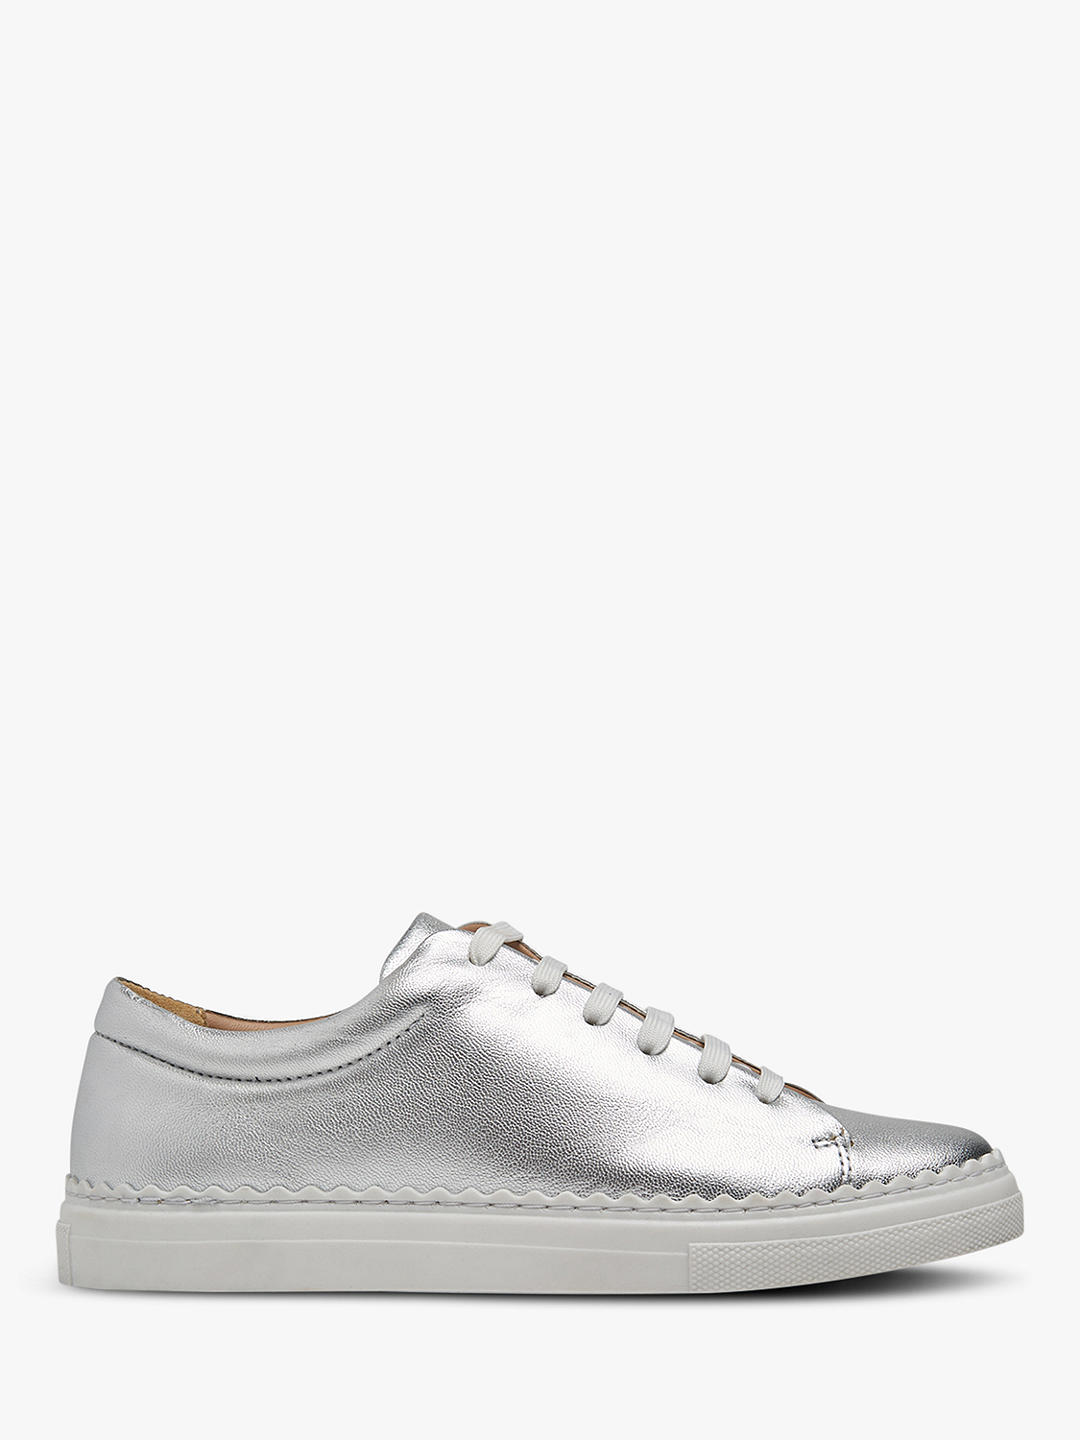 LK Bennett Jana Trainers, £69 reduced from £150/AED662.70, John Lewis